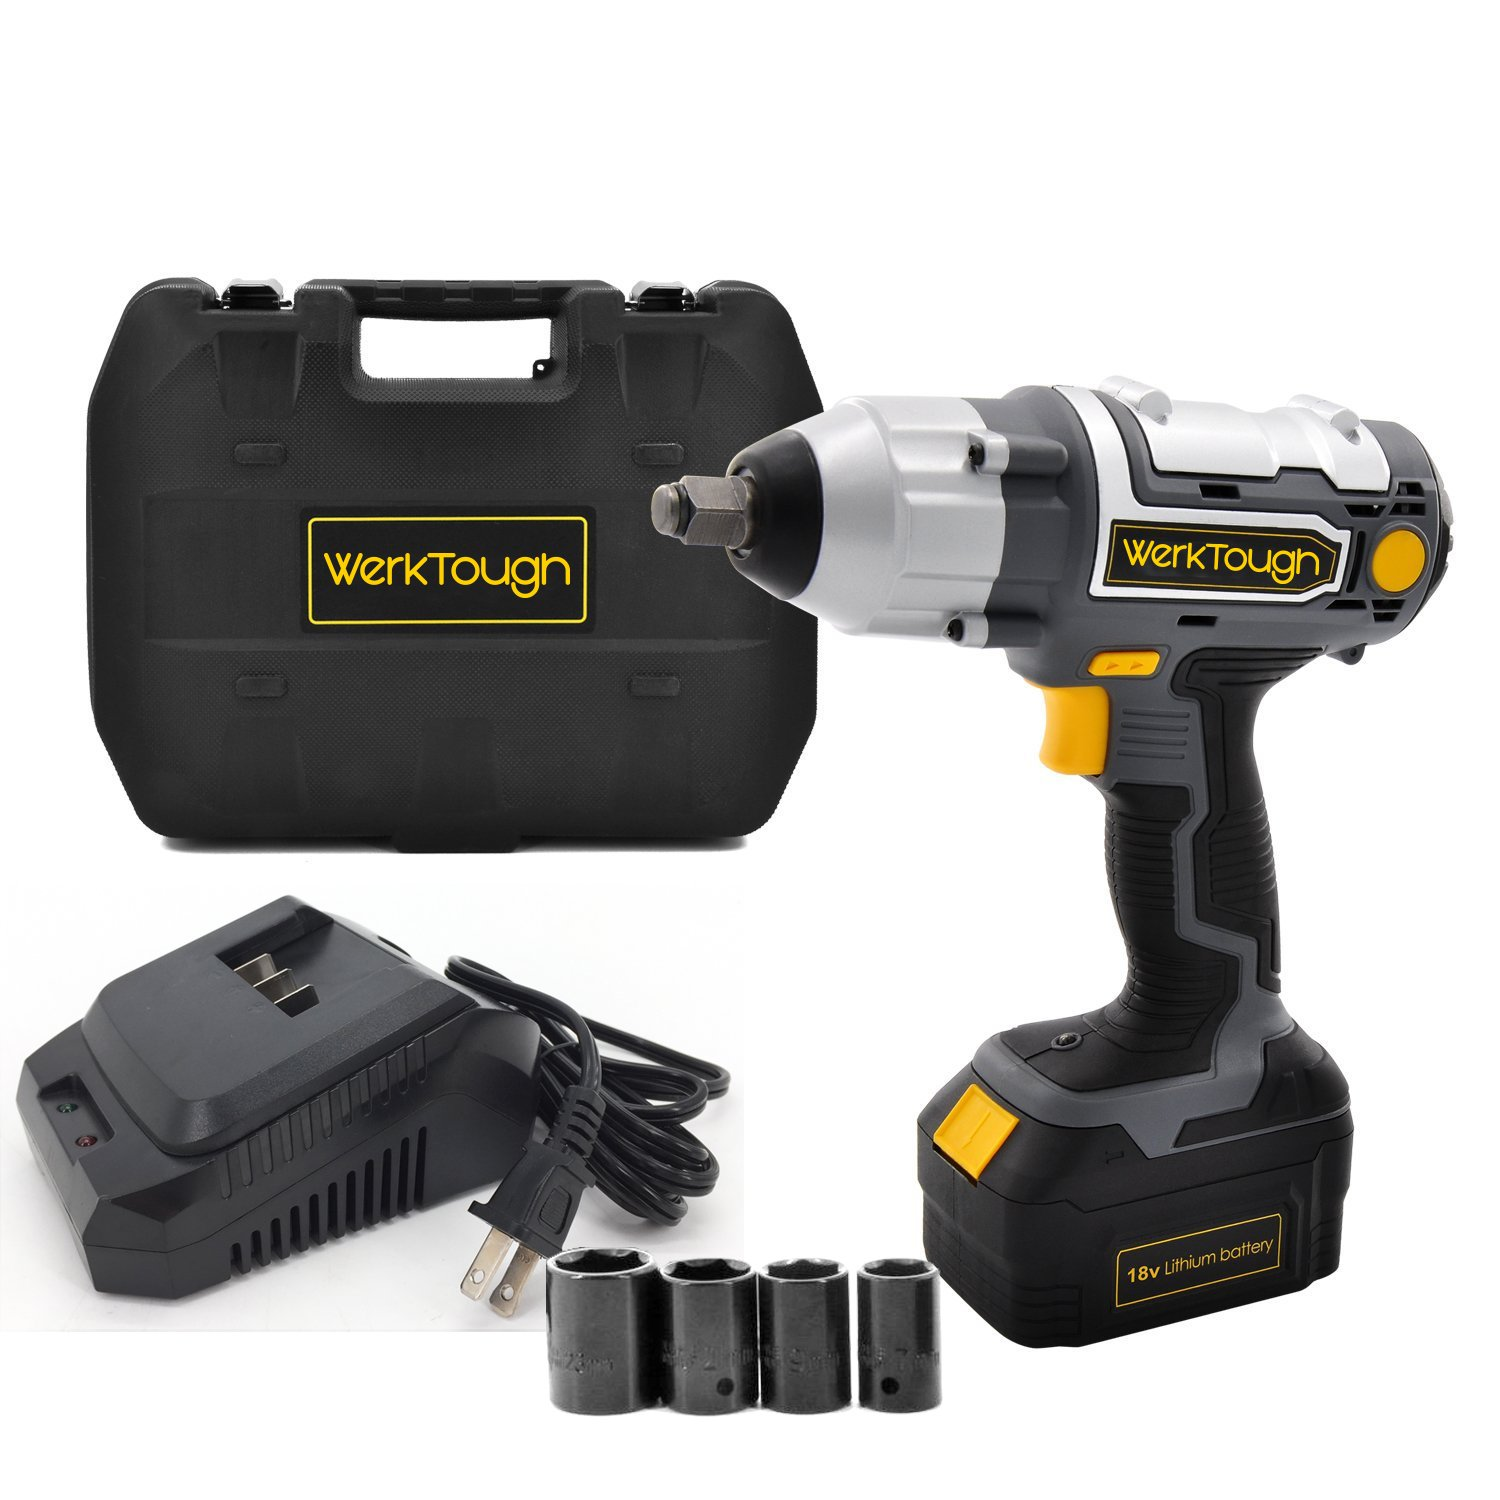 Werktough professional IW03 18V cordless impact wrench(heavy duty Anvil 1/2'') kit